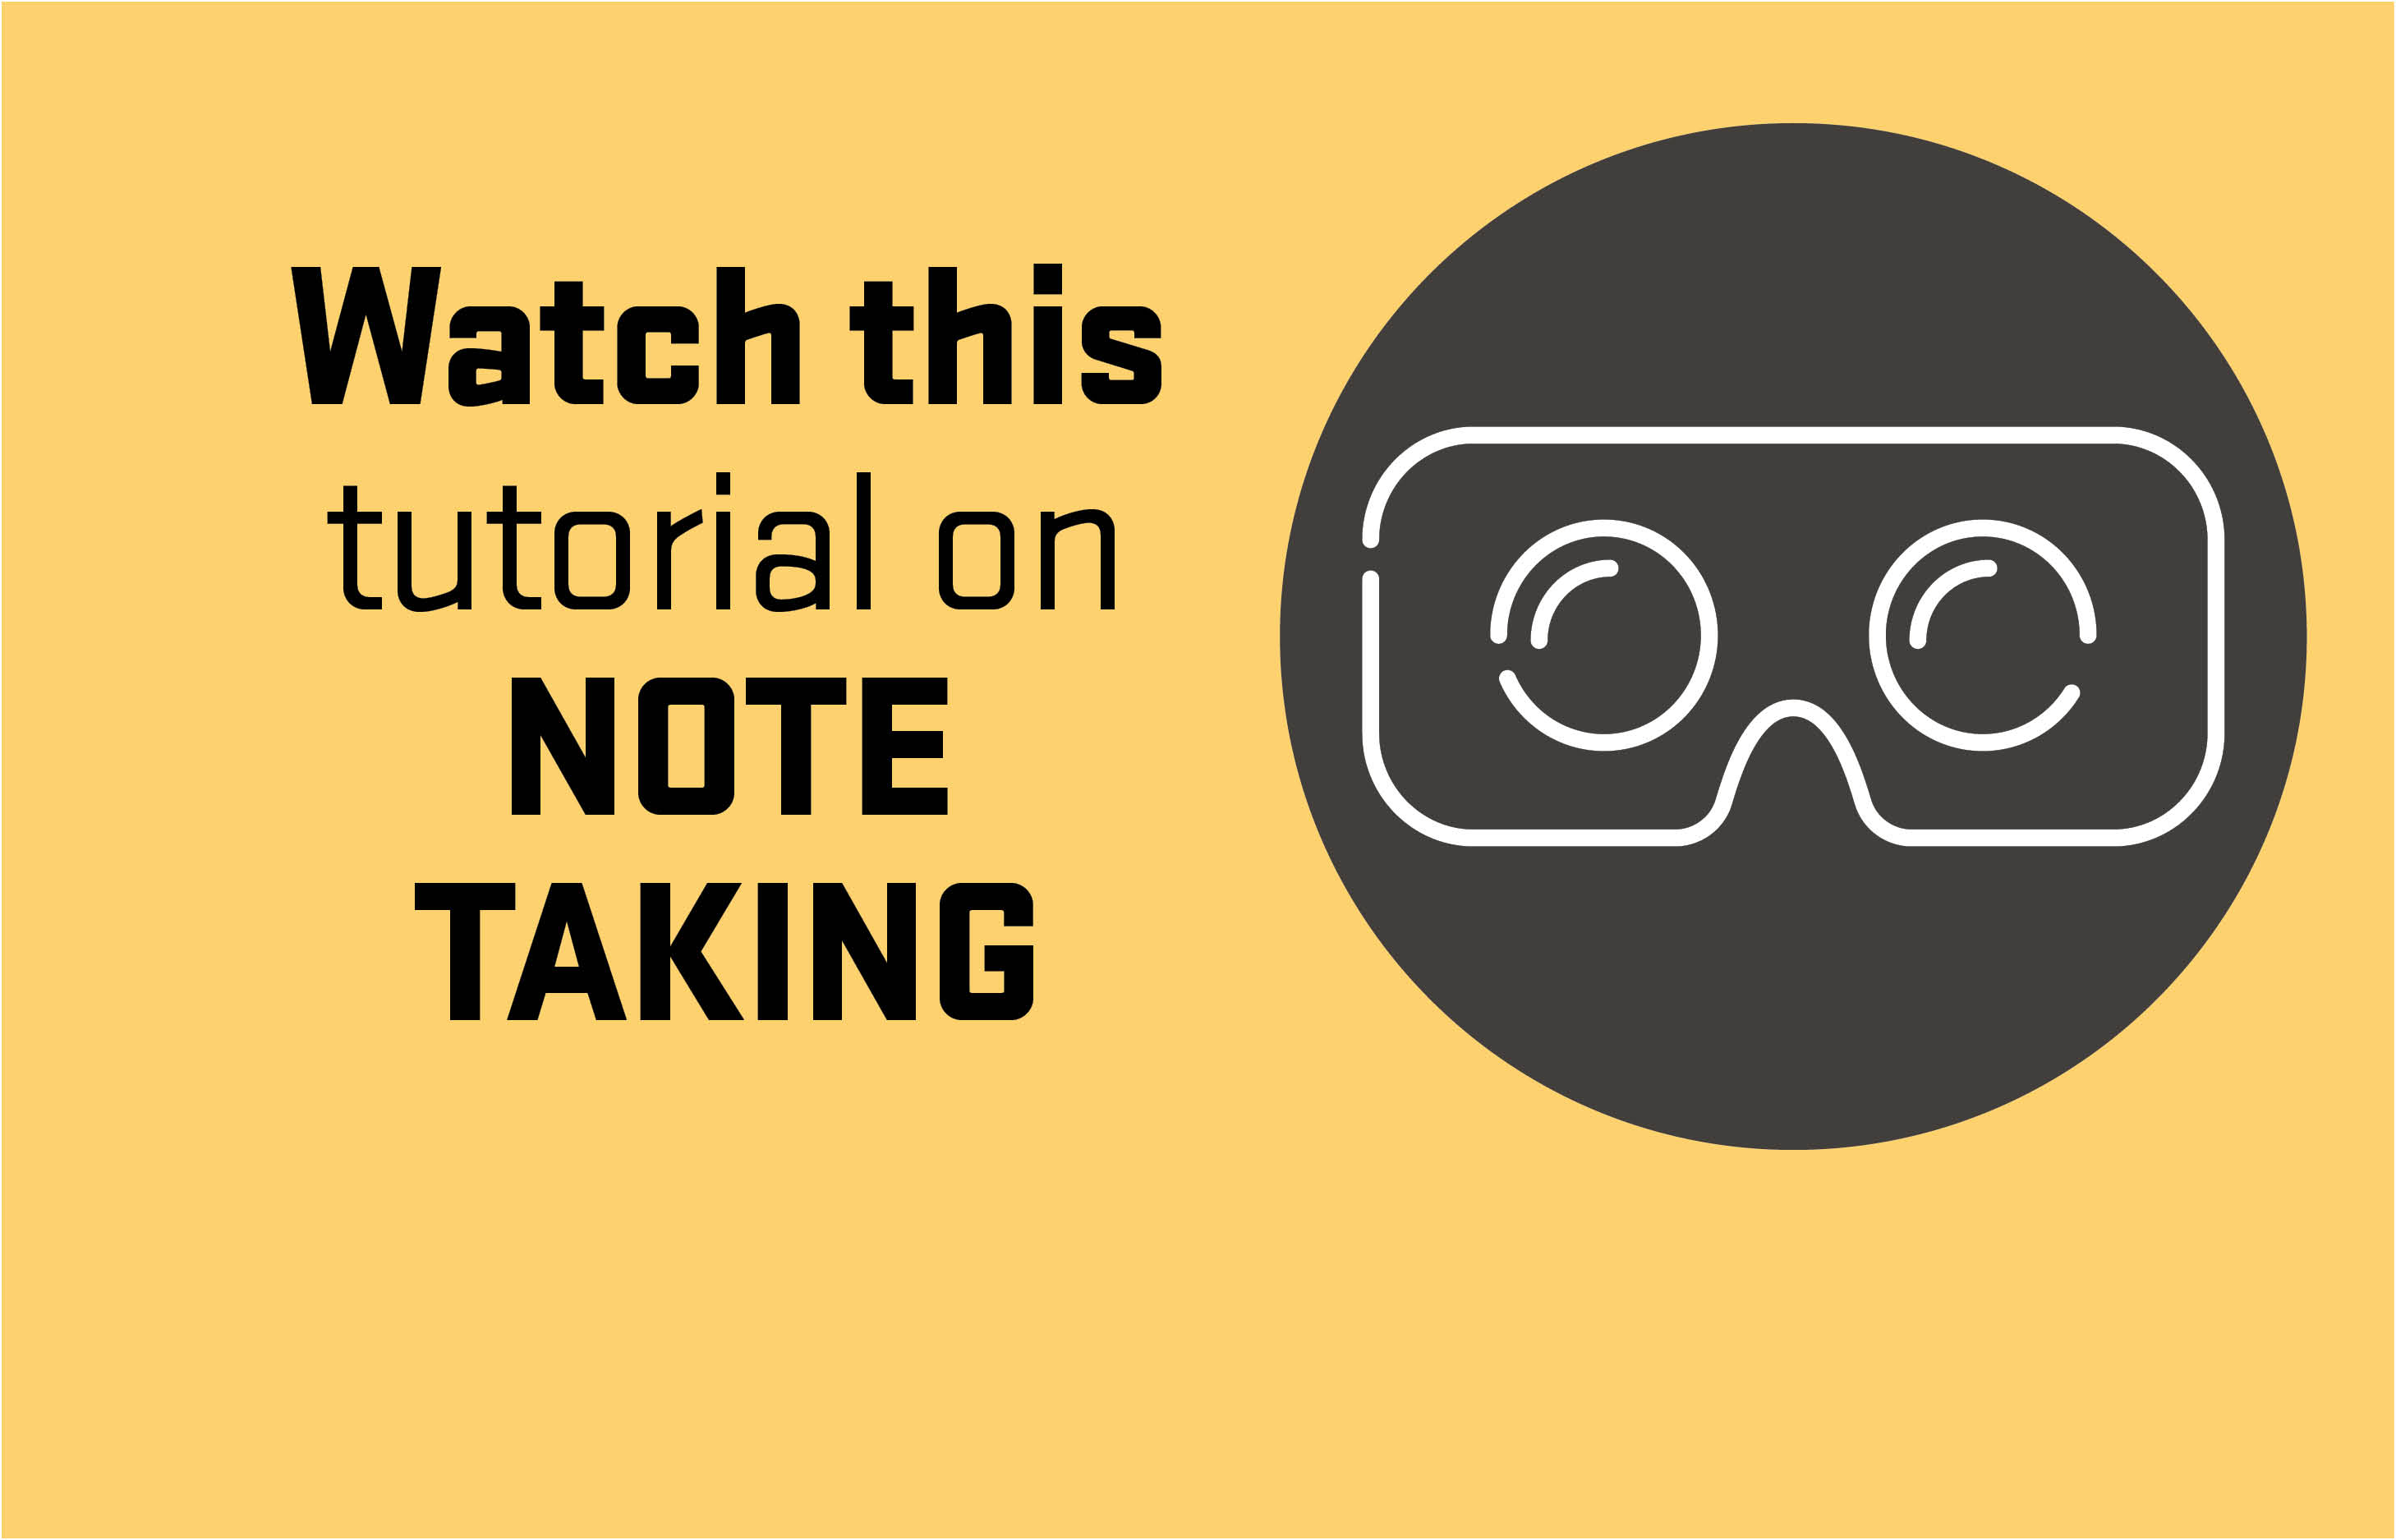 Watch this tutorial on note taking